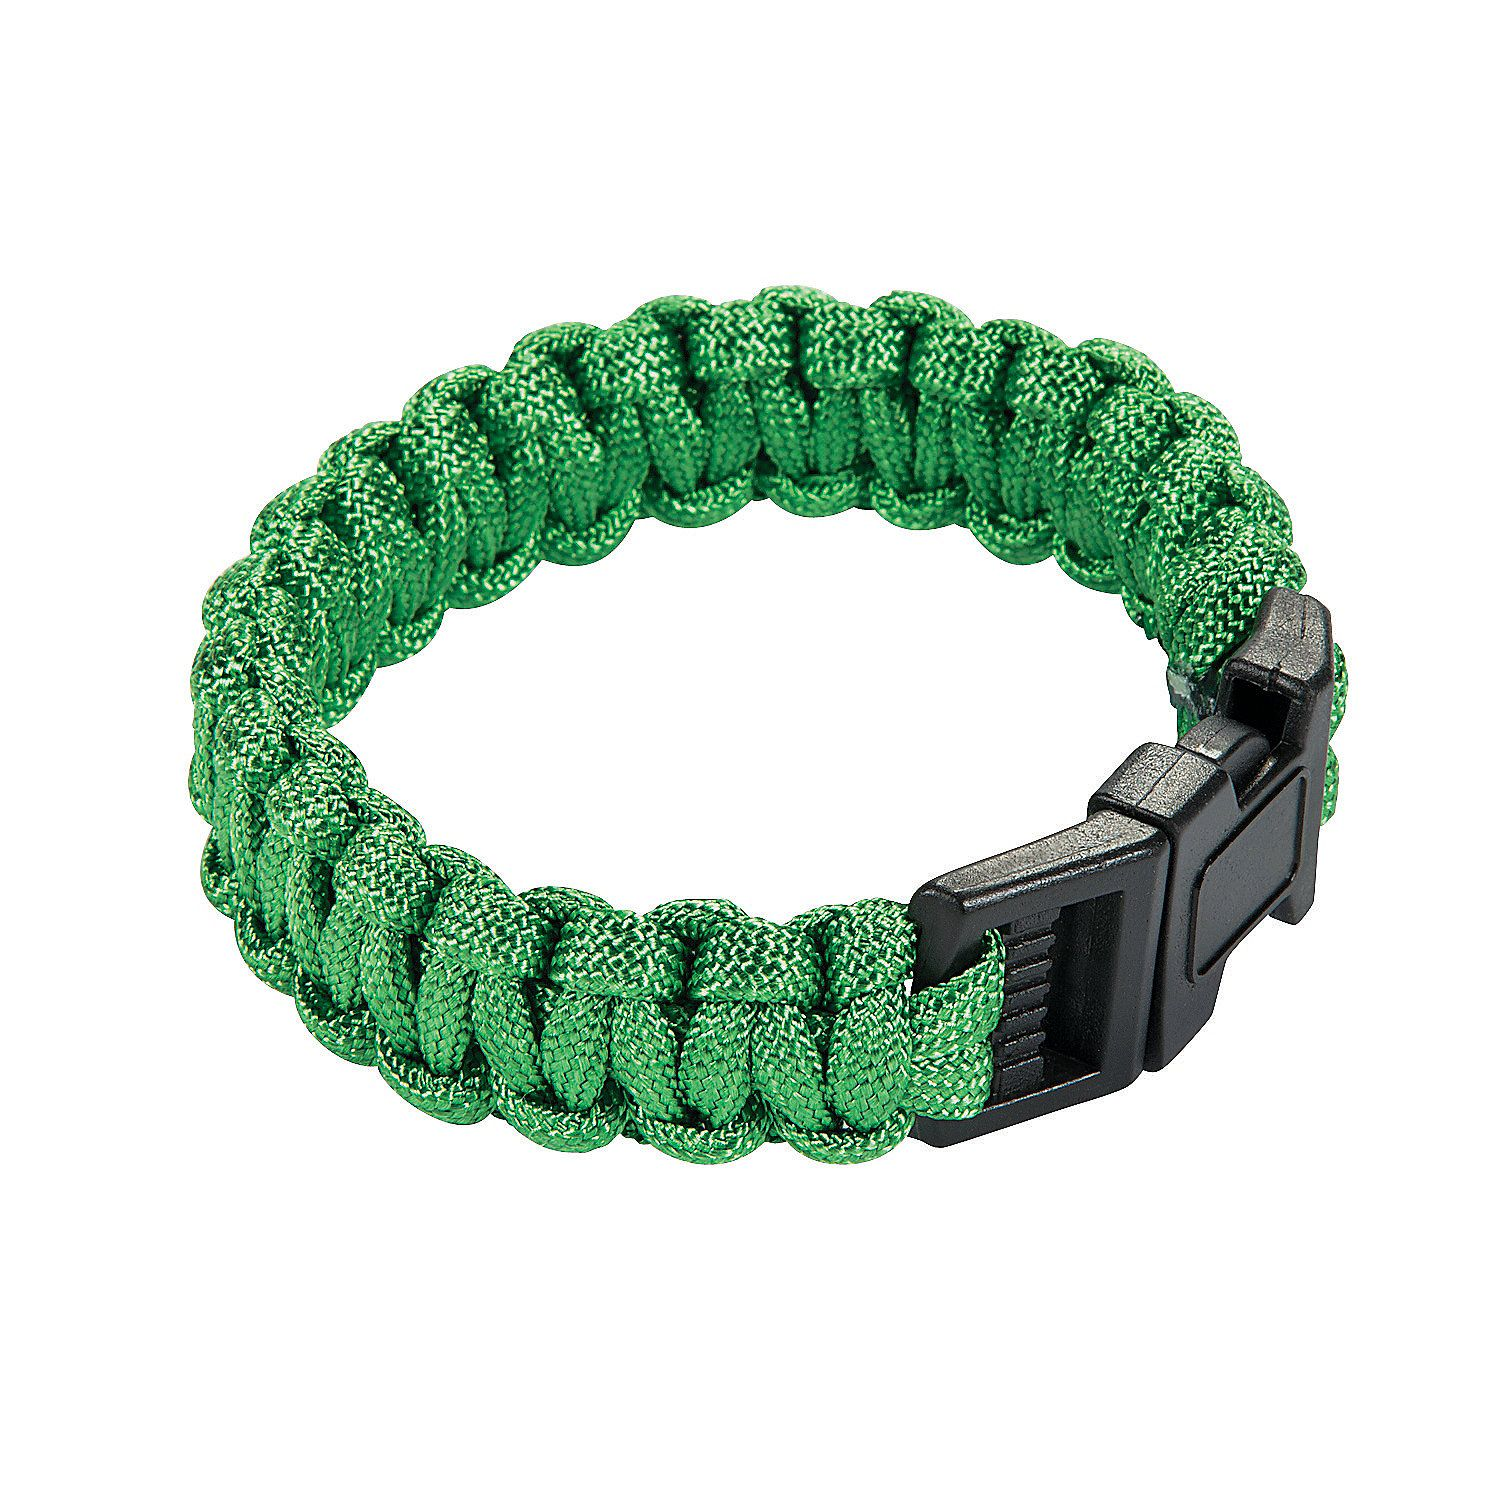 Adult's Green Paracord Bracelets - OrientalTrading.com